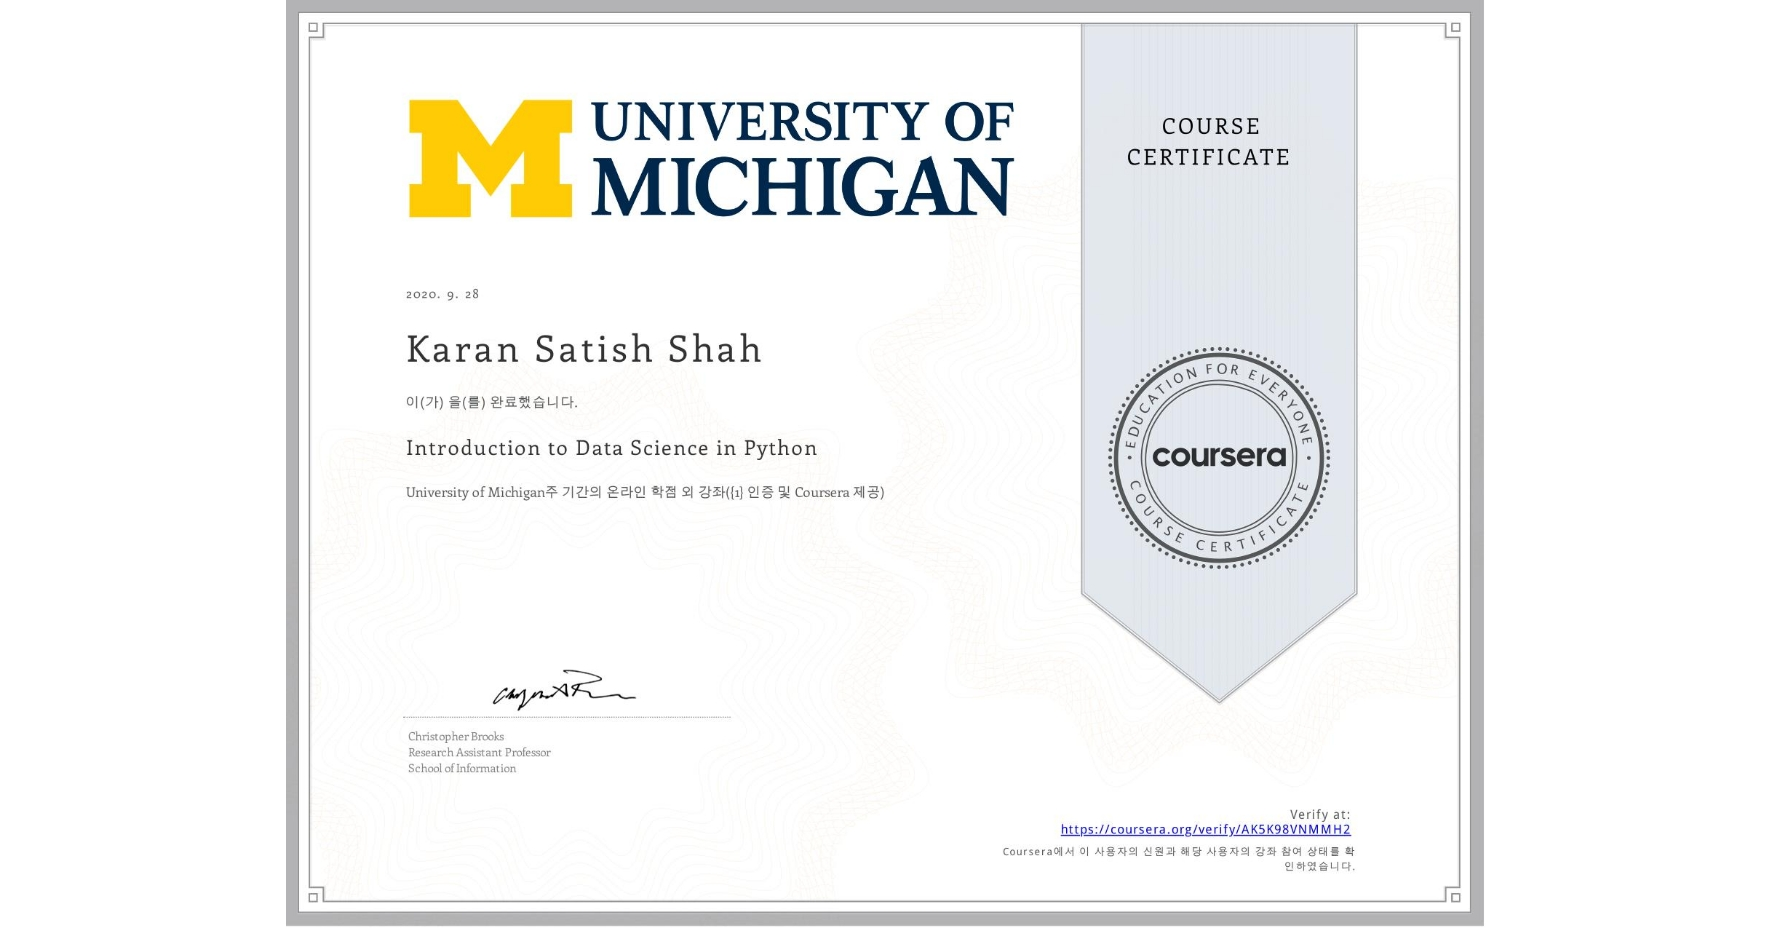 View certificate for Karan Satish Shah, Introduction to Data Science in Python, an online non-credit course authorized by University of Michigan and offered through Coursera